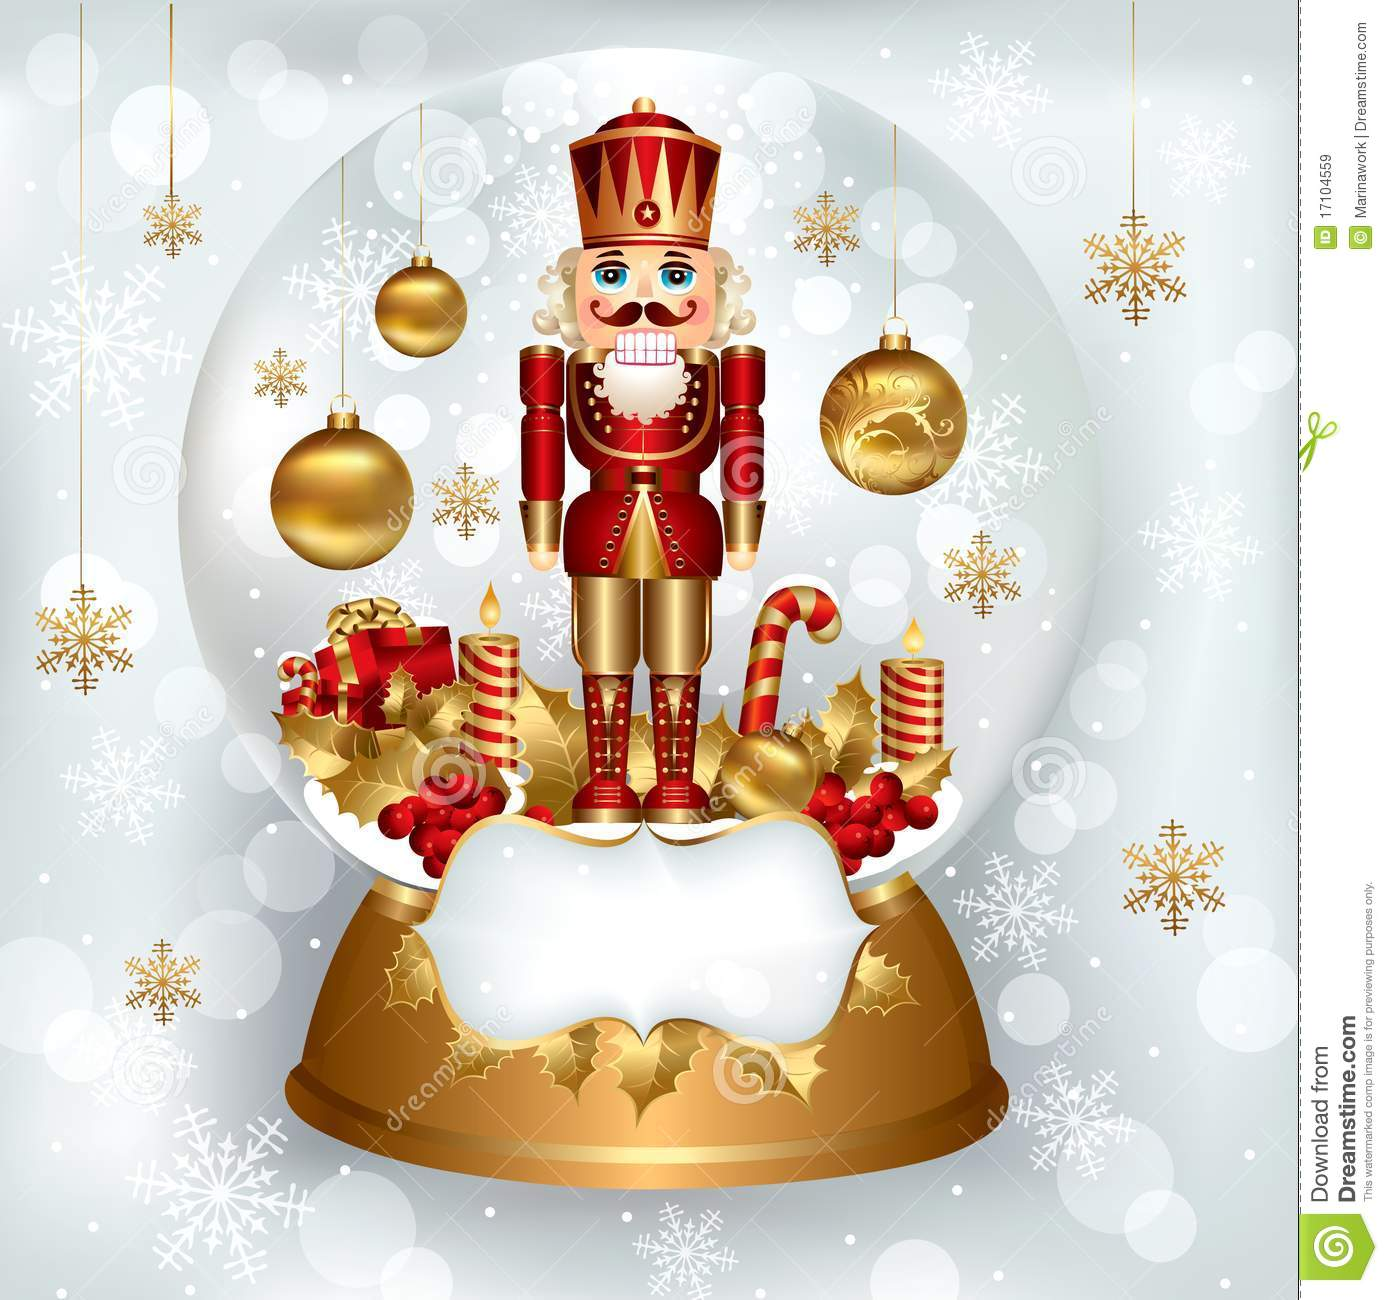 Nutcracker Stock Photos, Images, & Pictures - 7,578 Images